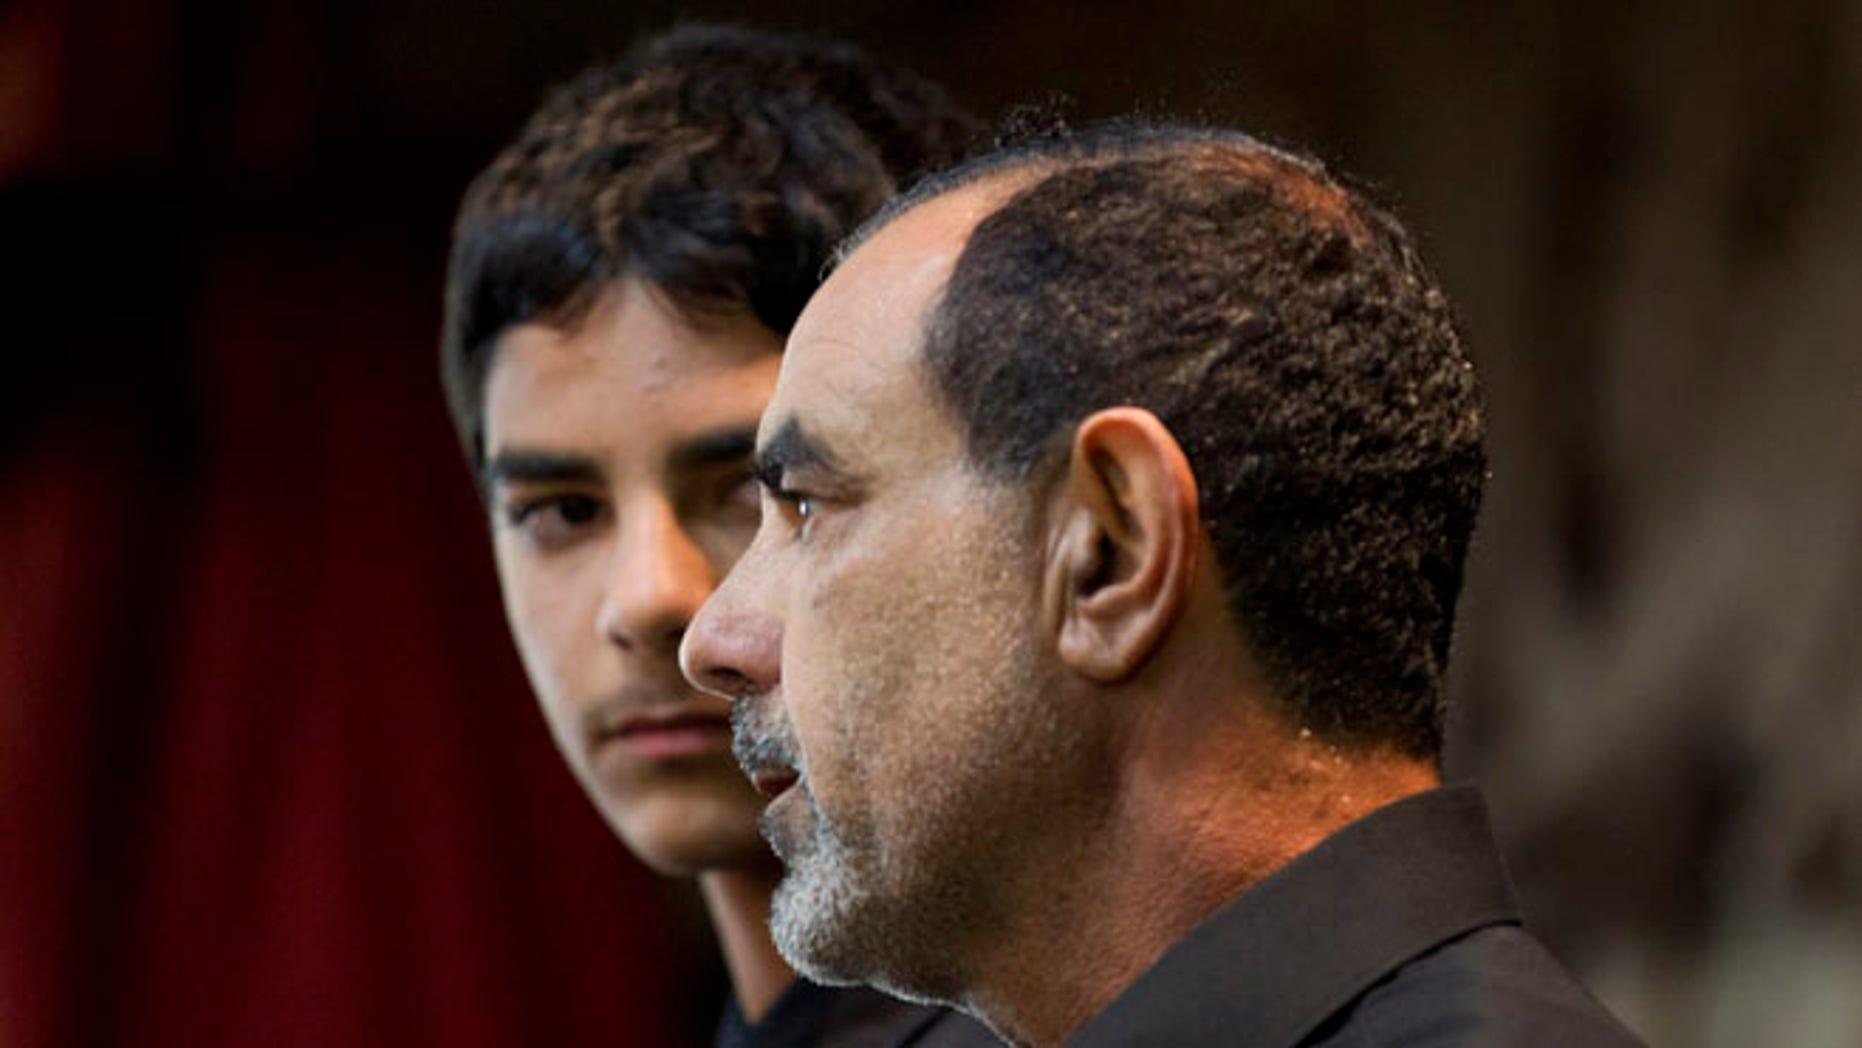 March 27, 2012: In this file photo showing Kassim Alhimidi, right, speaks alongside his son, Mohammed Alhimidi, during a memorial for his wife, Shaima Alawadi at a mosque in Lakeside, Calif.